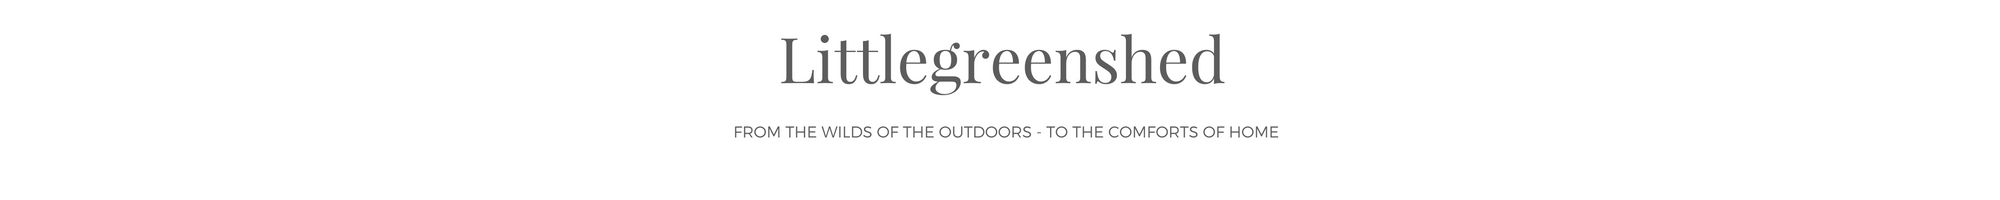 Littlegreenshed | UK Lifestyle & Travel Blog, featuring food, interiors, travel and family fun.